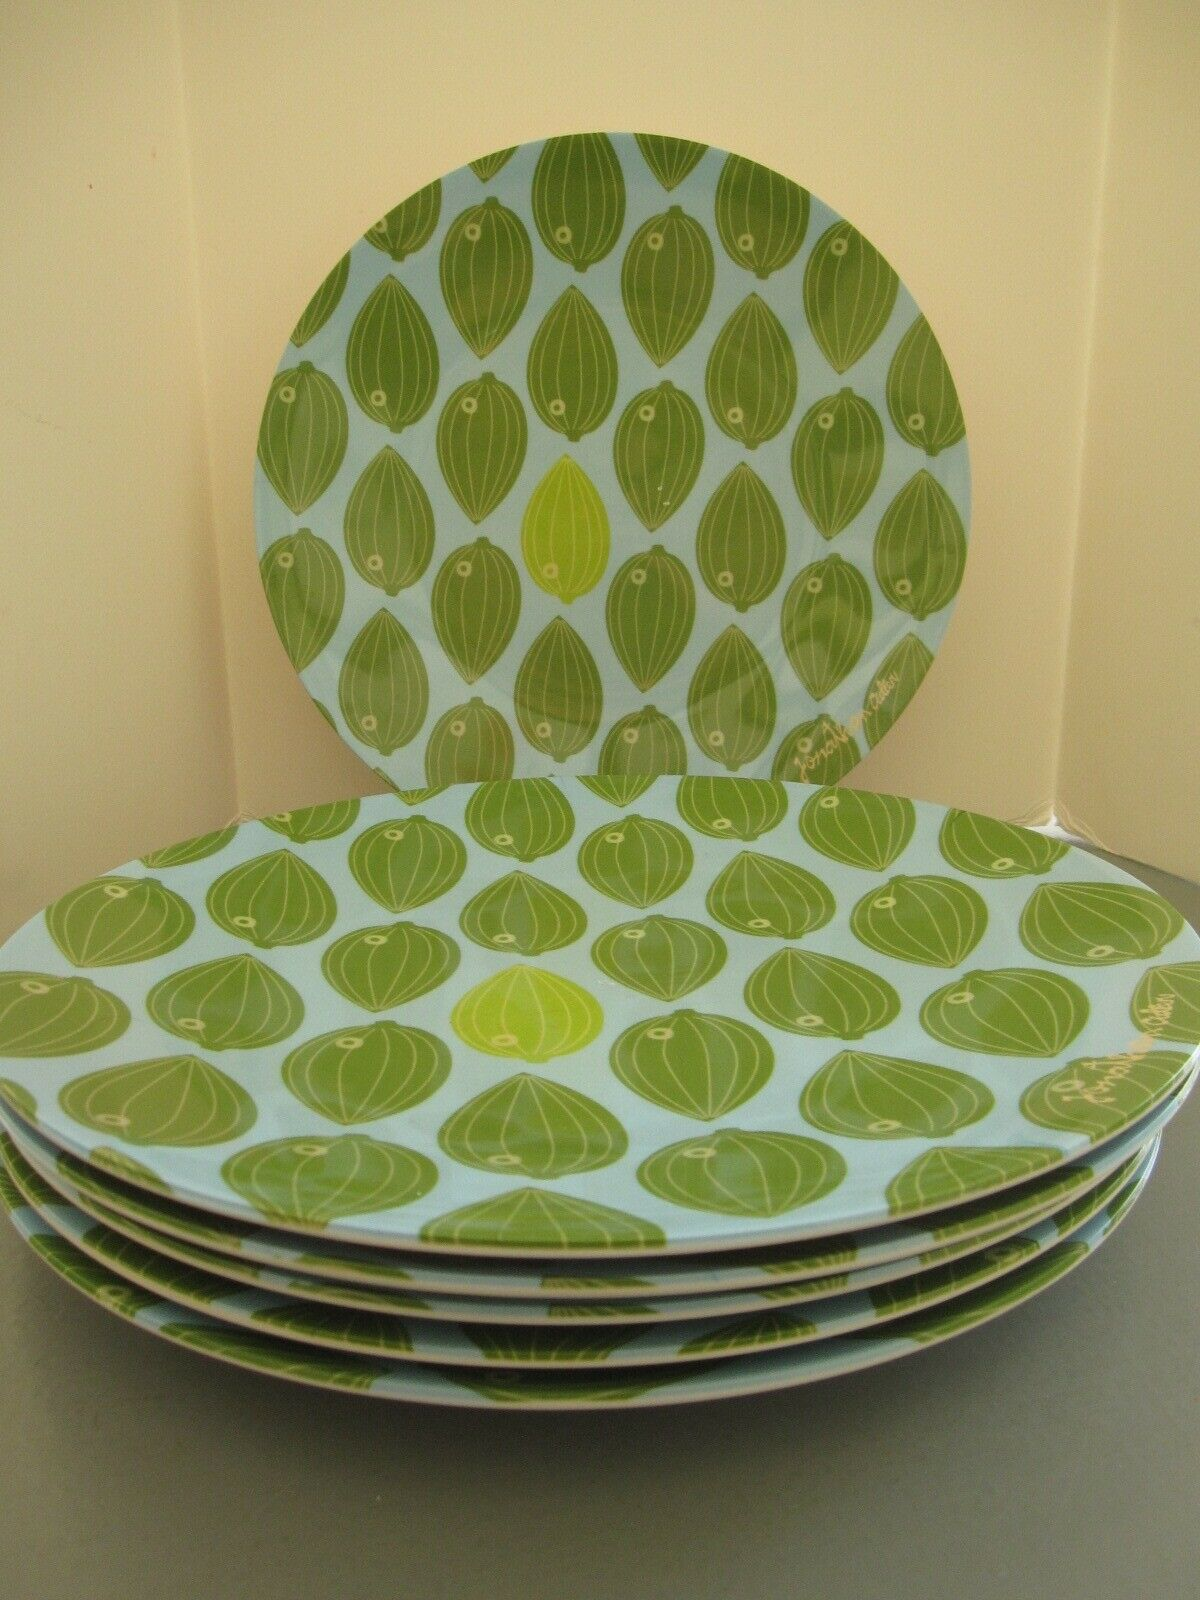 NEW Precidio Objects Jonathan Adler Palm Beach Fish Manhattan 6 PlatesREDUCED